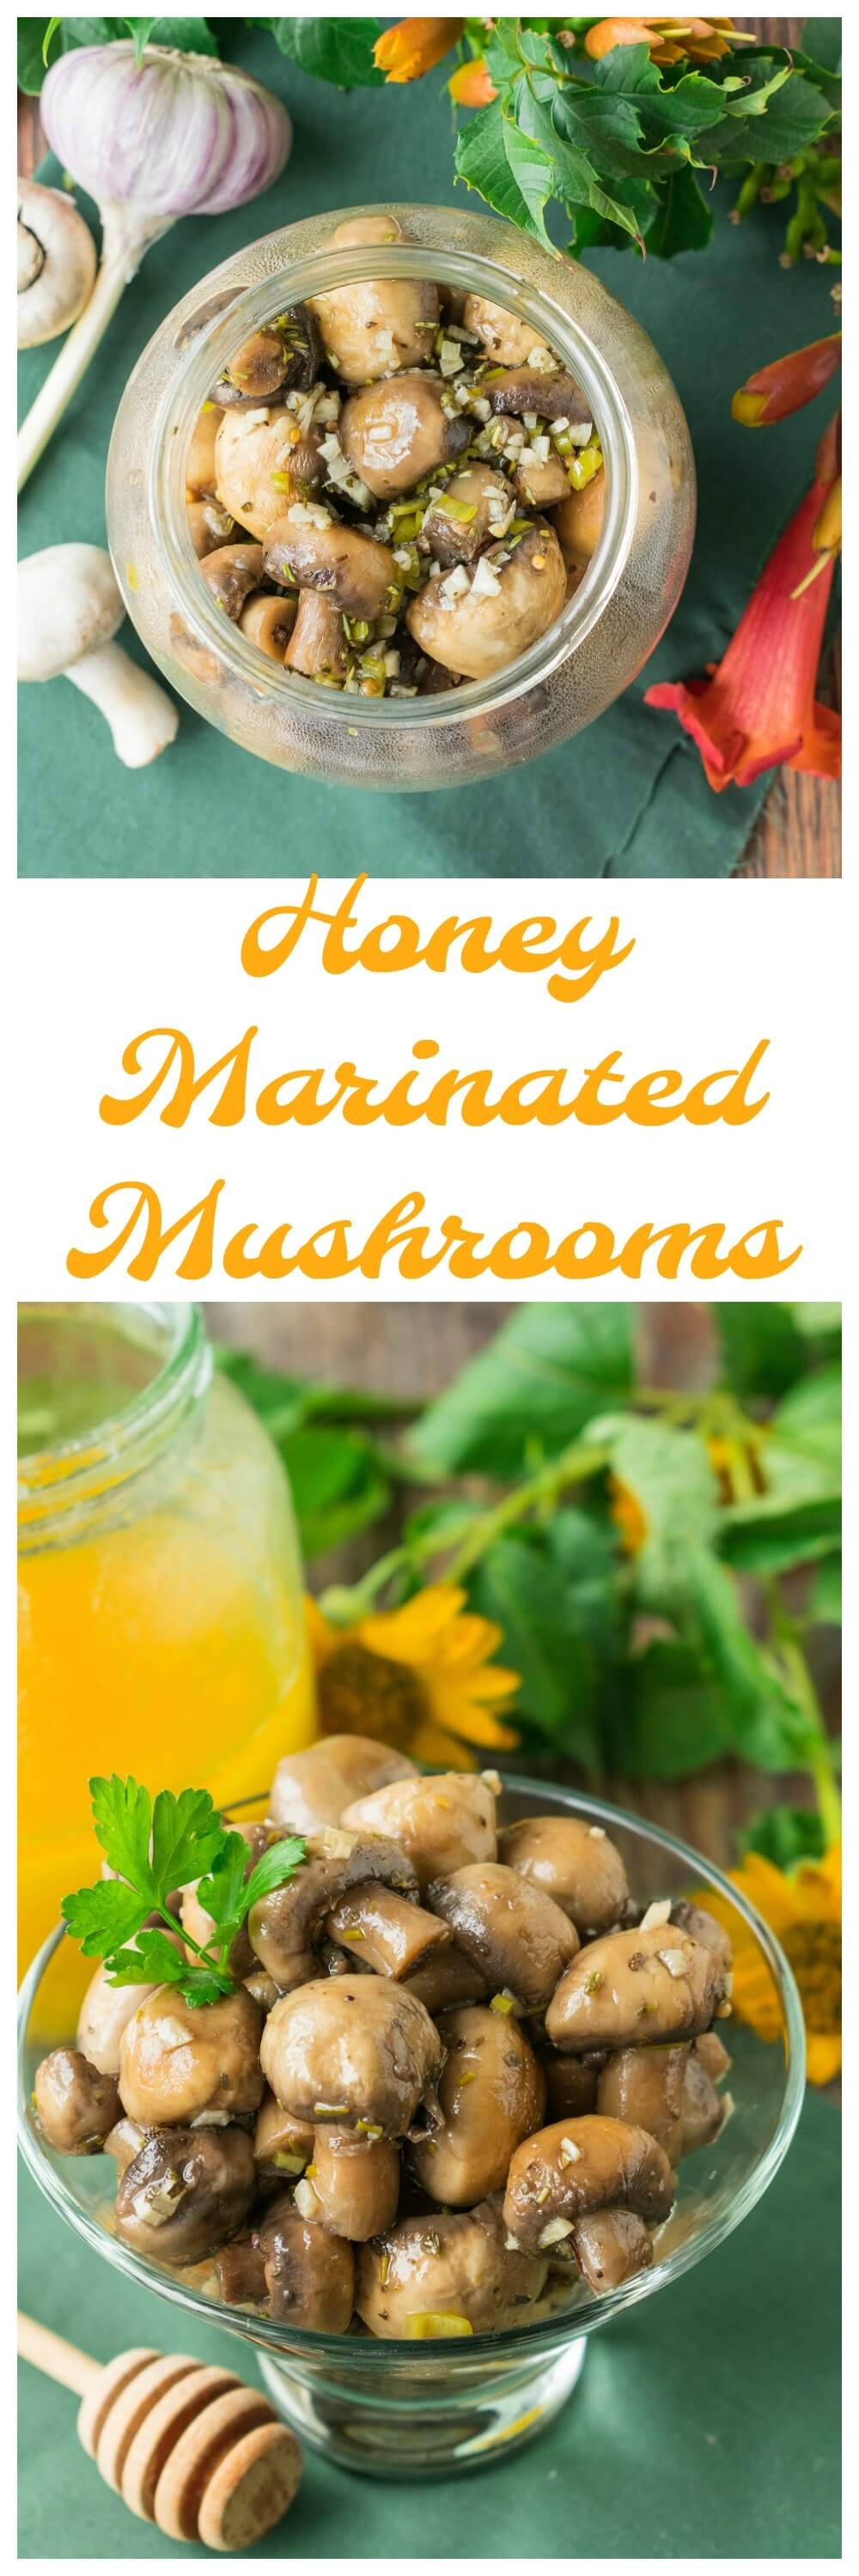 Honey Marinated Mushrooms